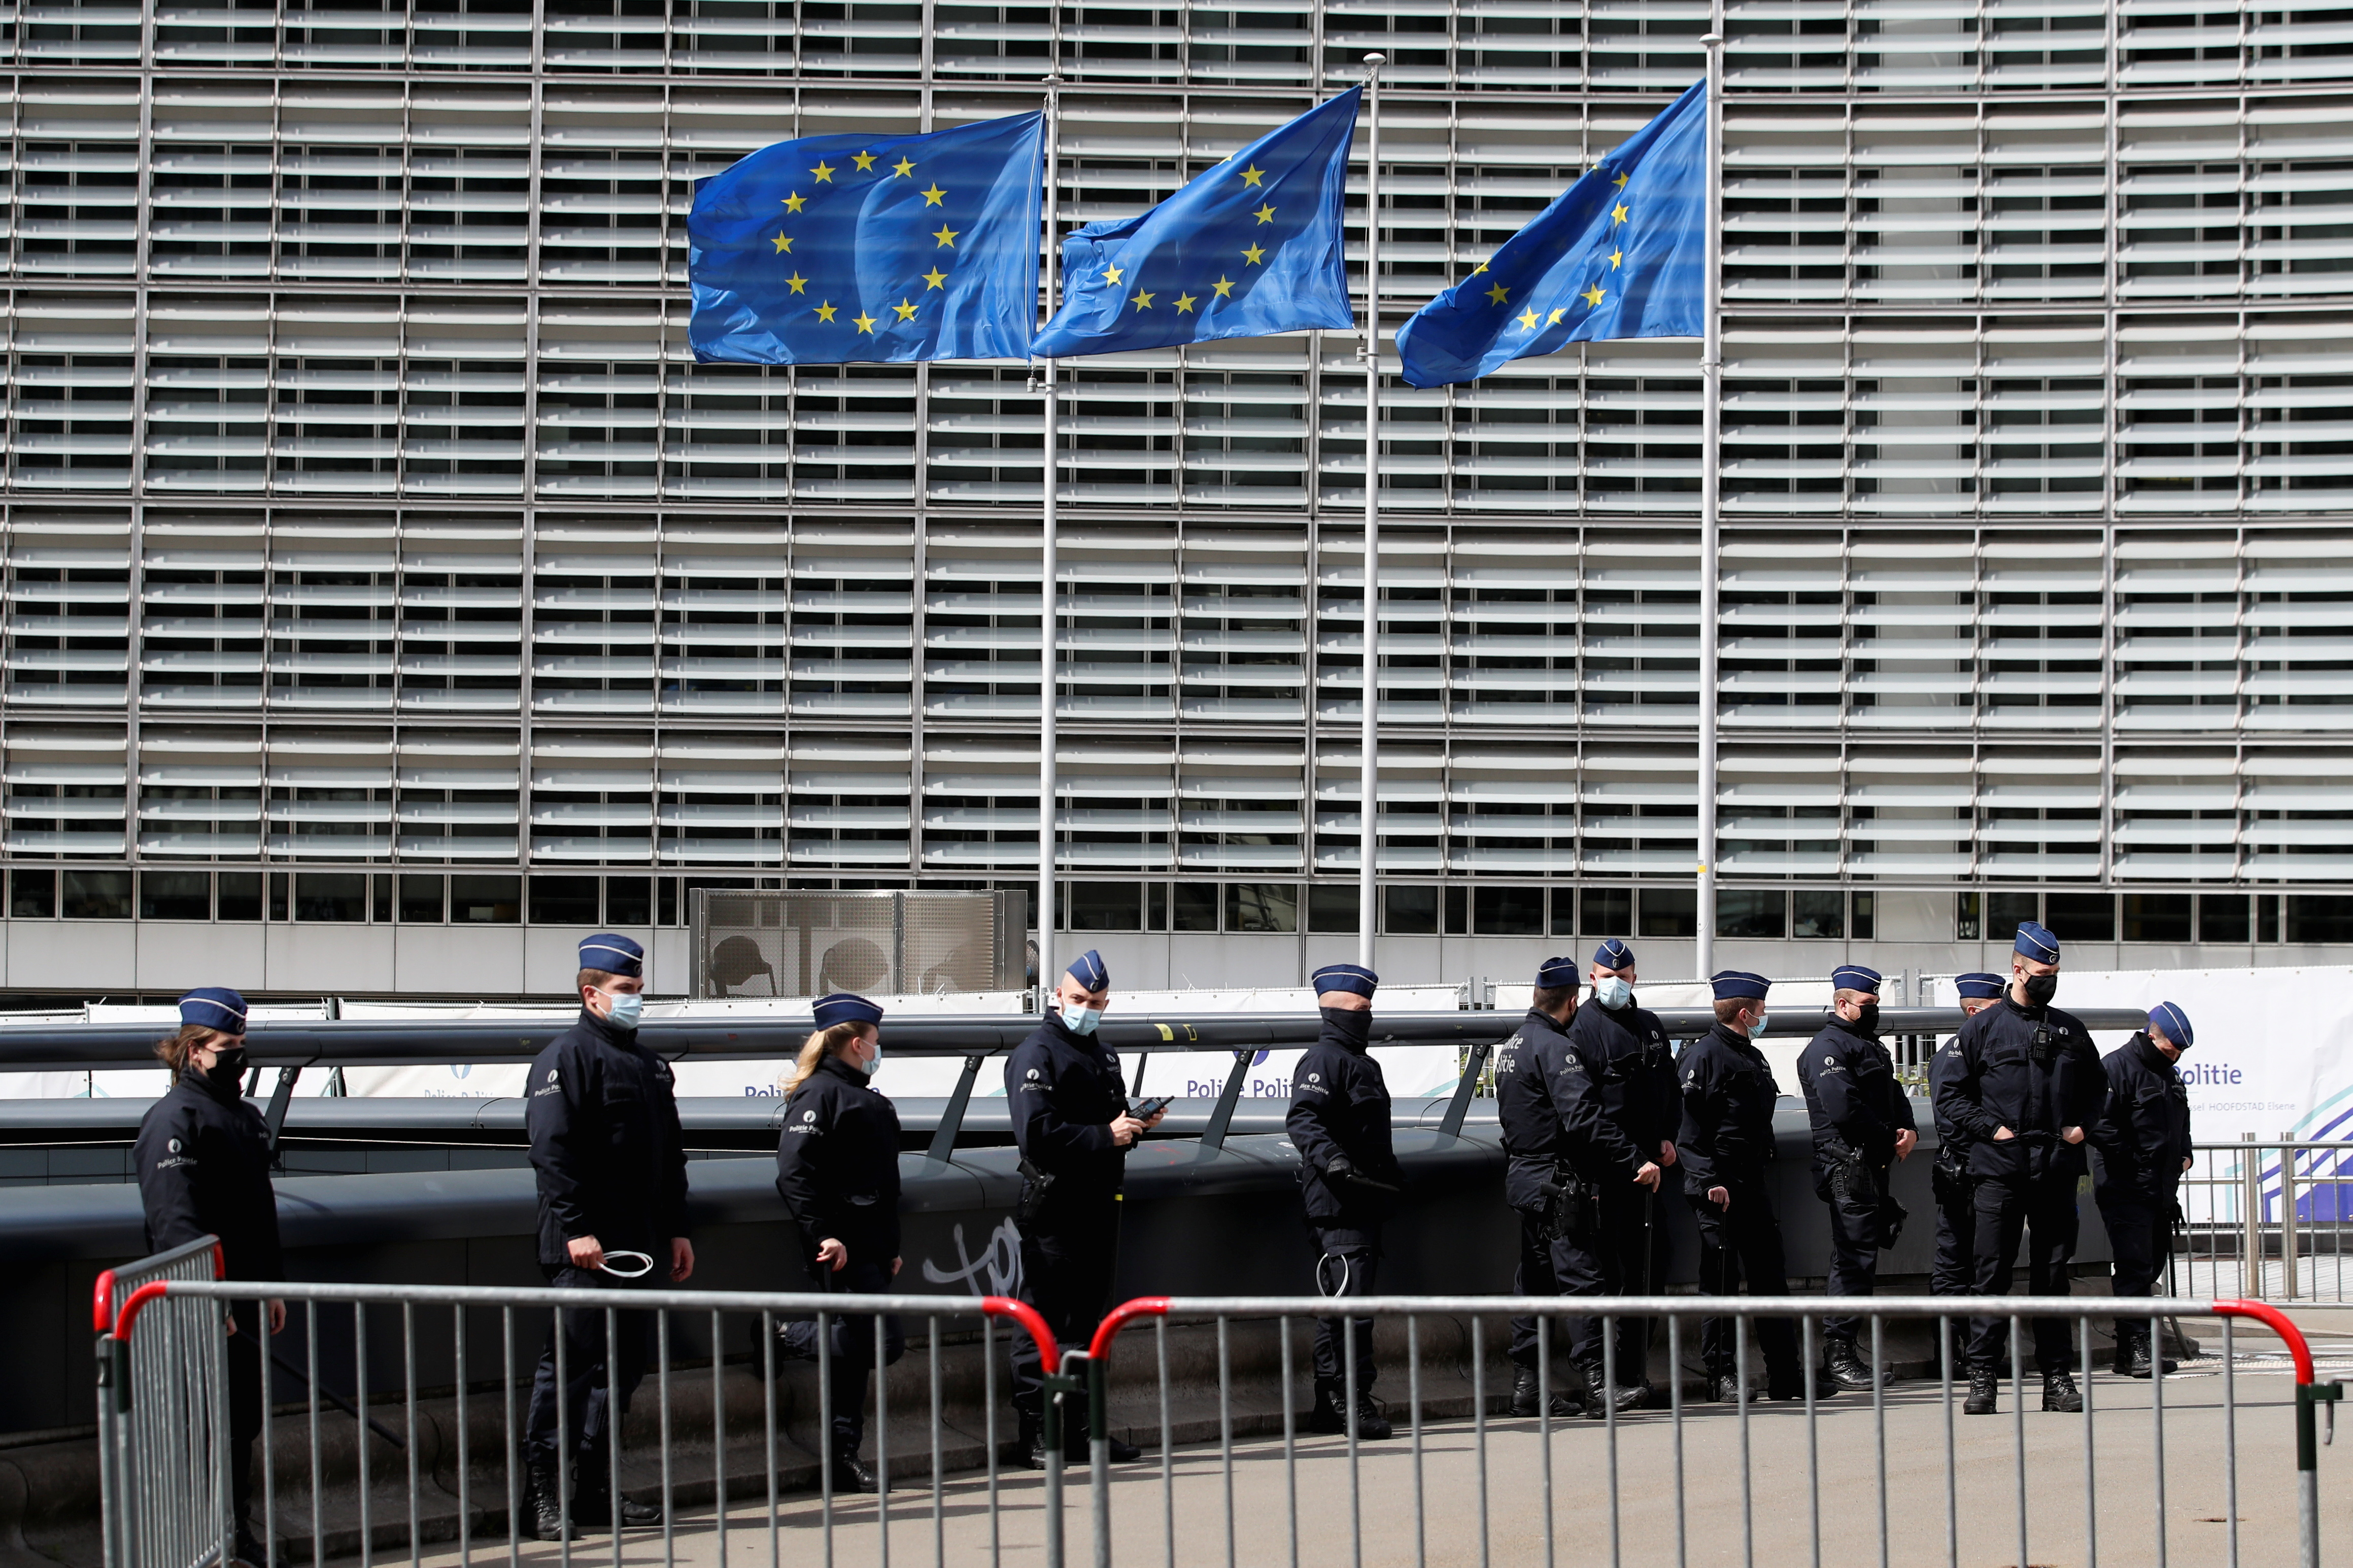 Police officers secure the area around the EU Commission where the EU summit is taking place in Brussels, Belgium, May 24, 2021. REUTERS/Yves Herman